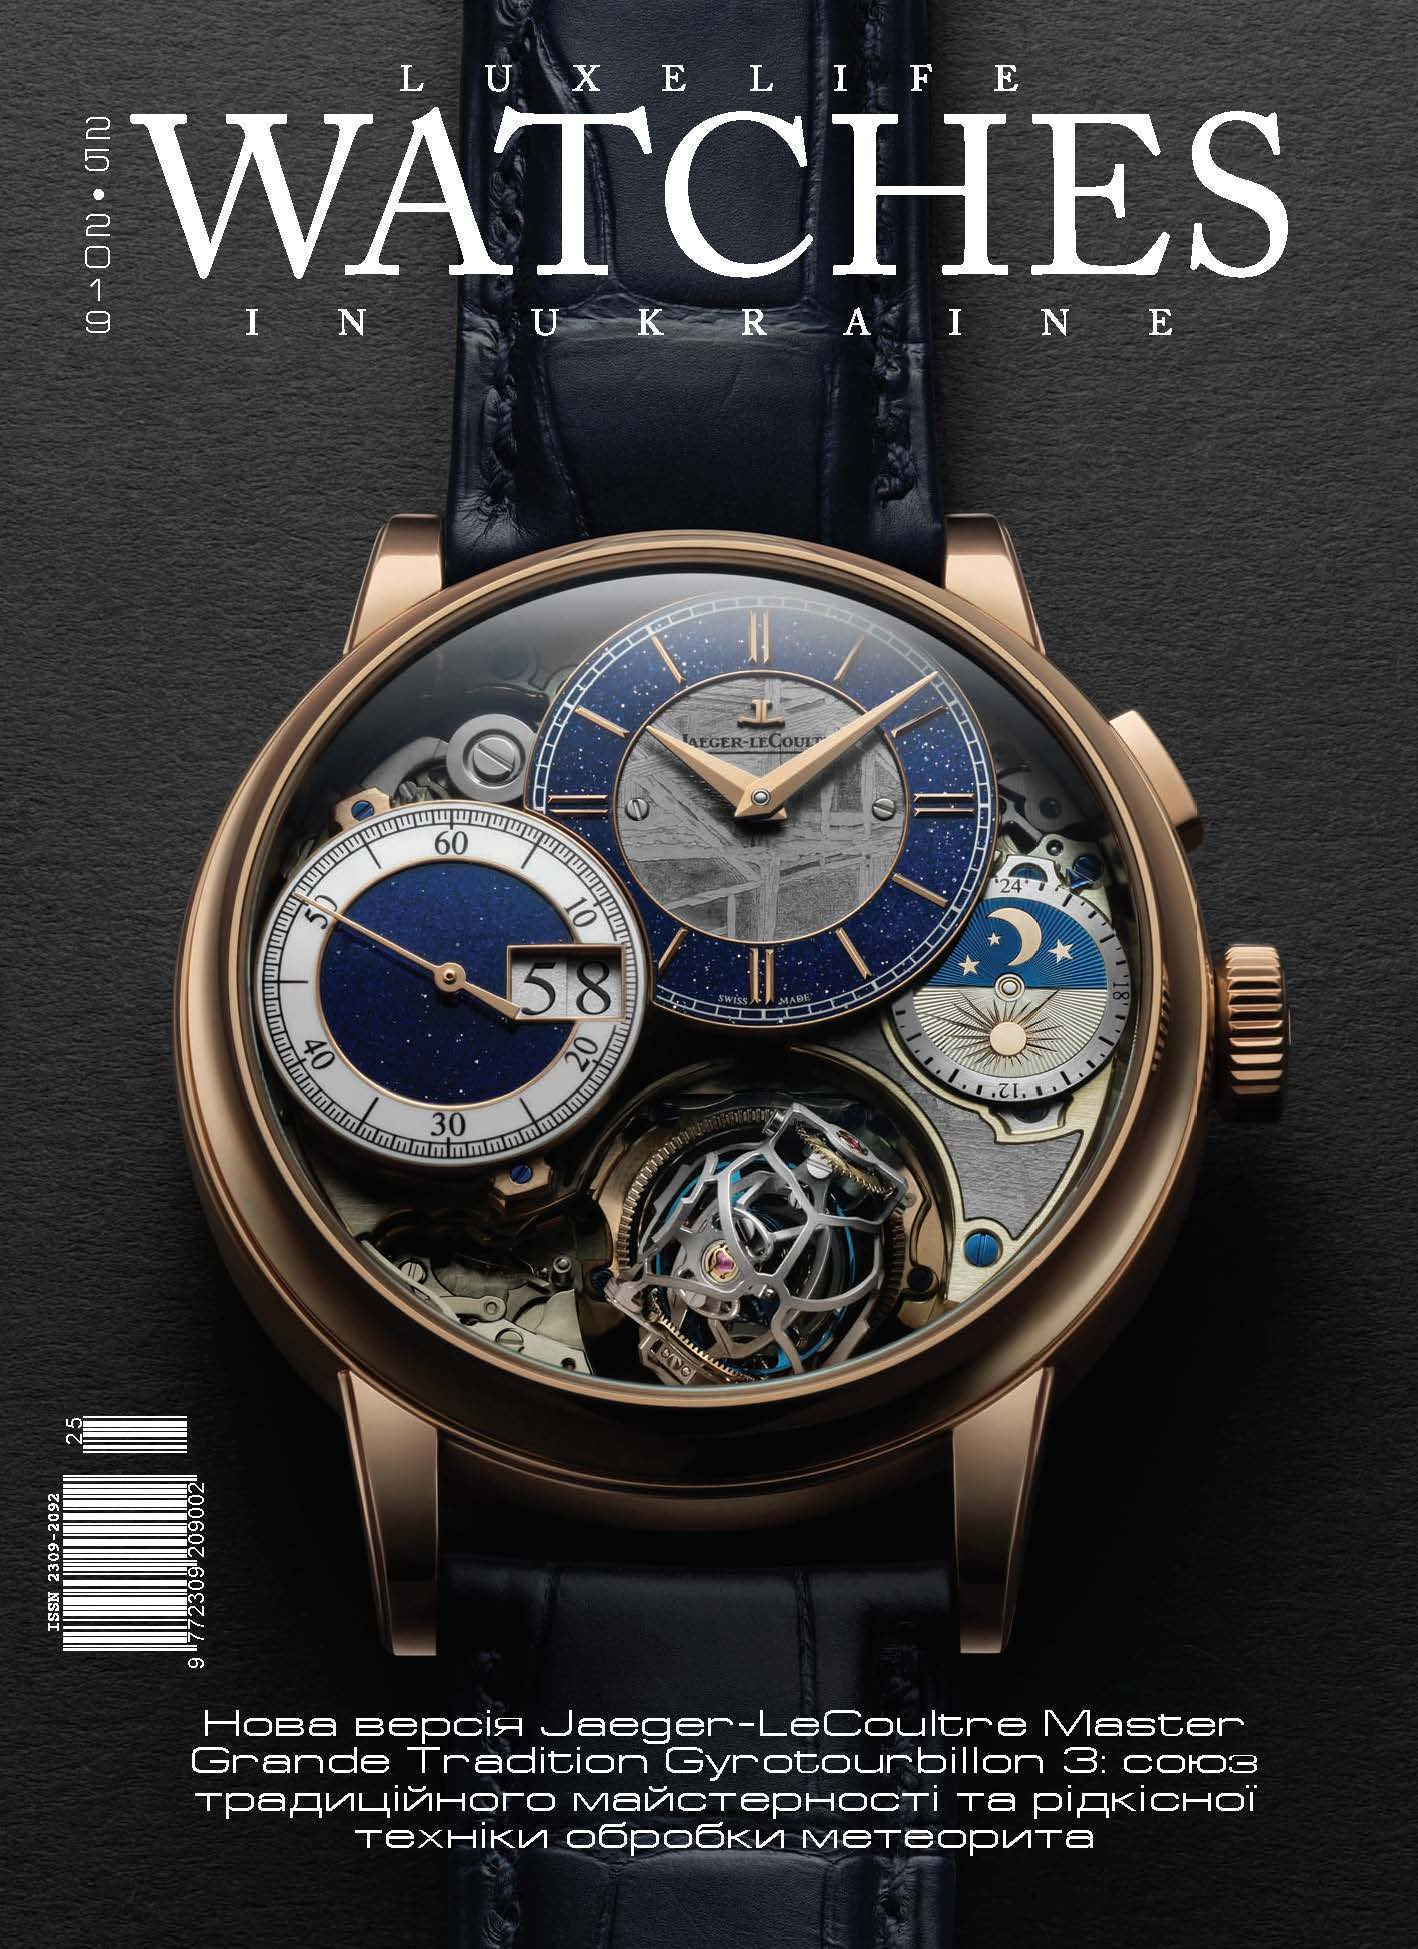 Pages_de_Watches_in_Ukraine_Luxe_Life_25_2019.jpg